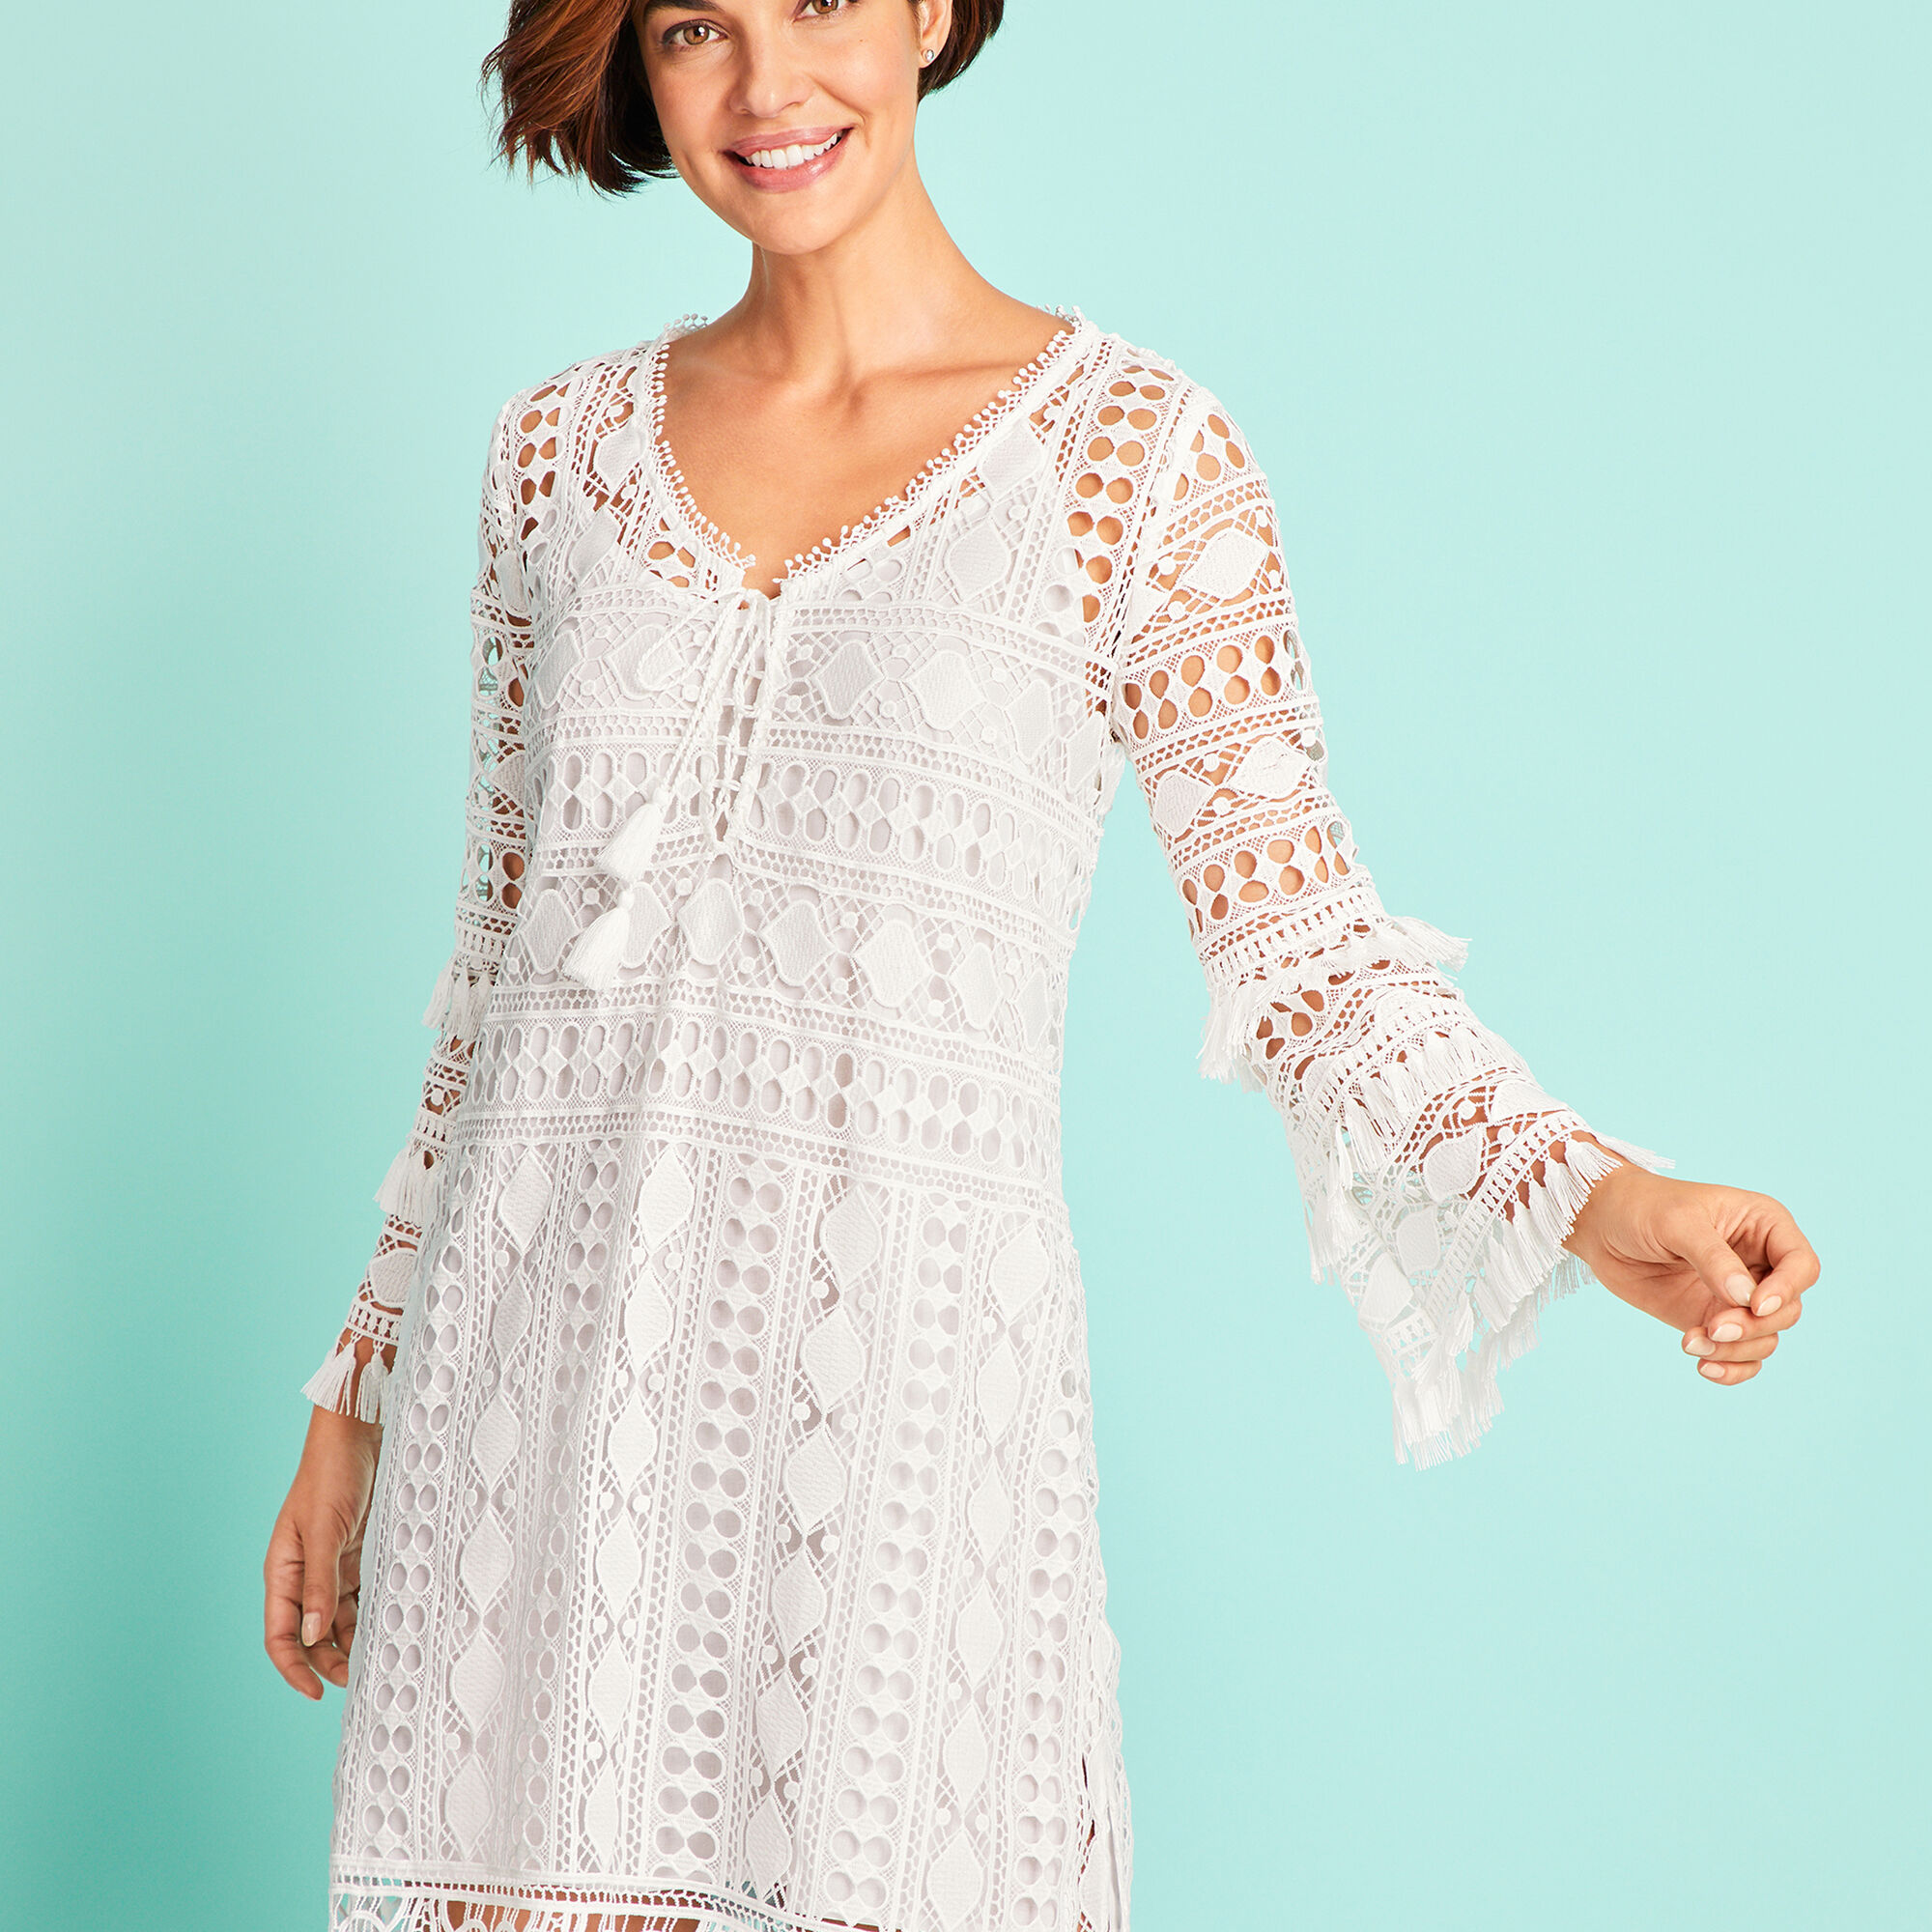 dc78177d21ade Bell-Sleeve Embroidered Lace Cover-up Opens a New Window.